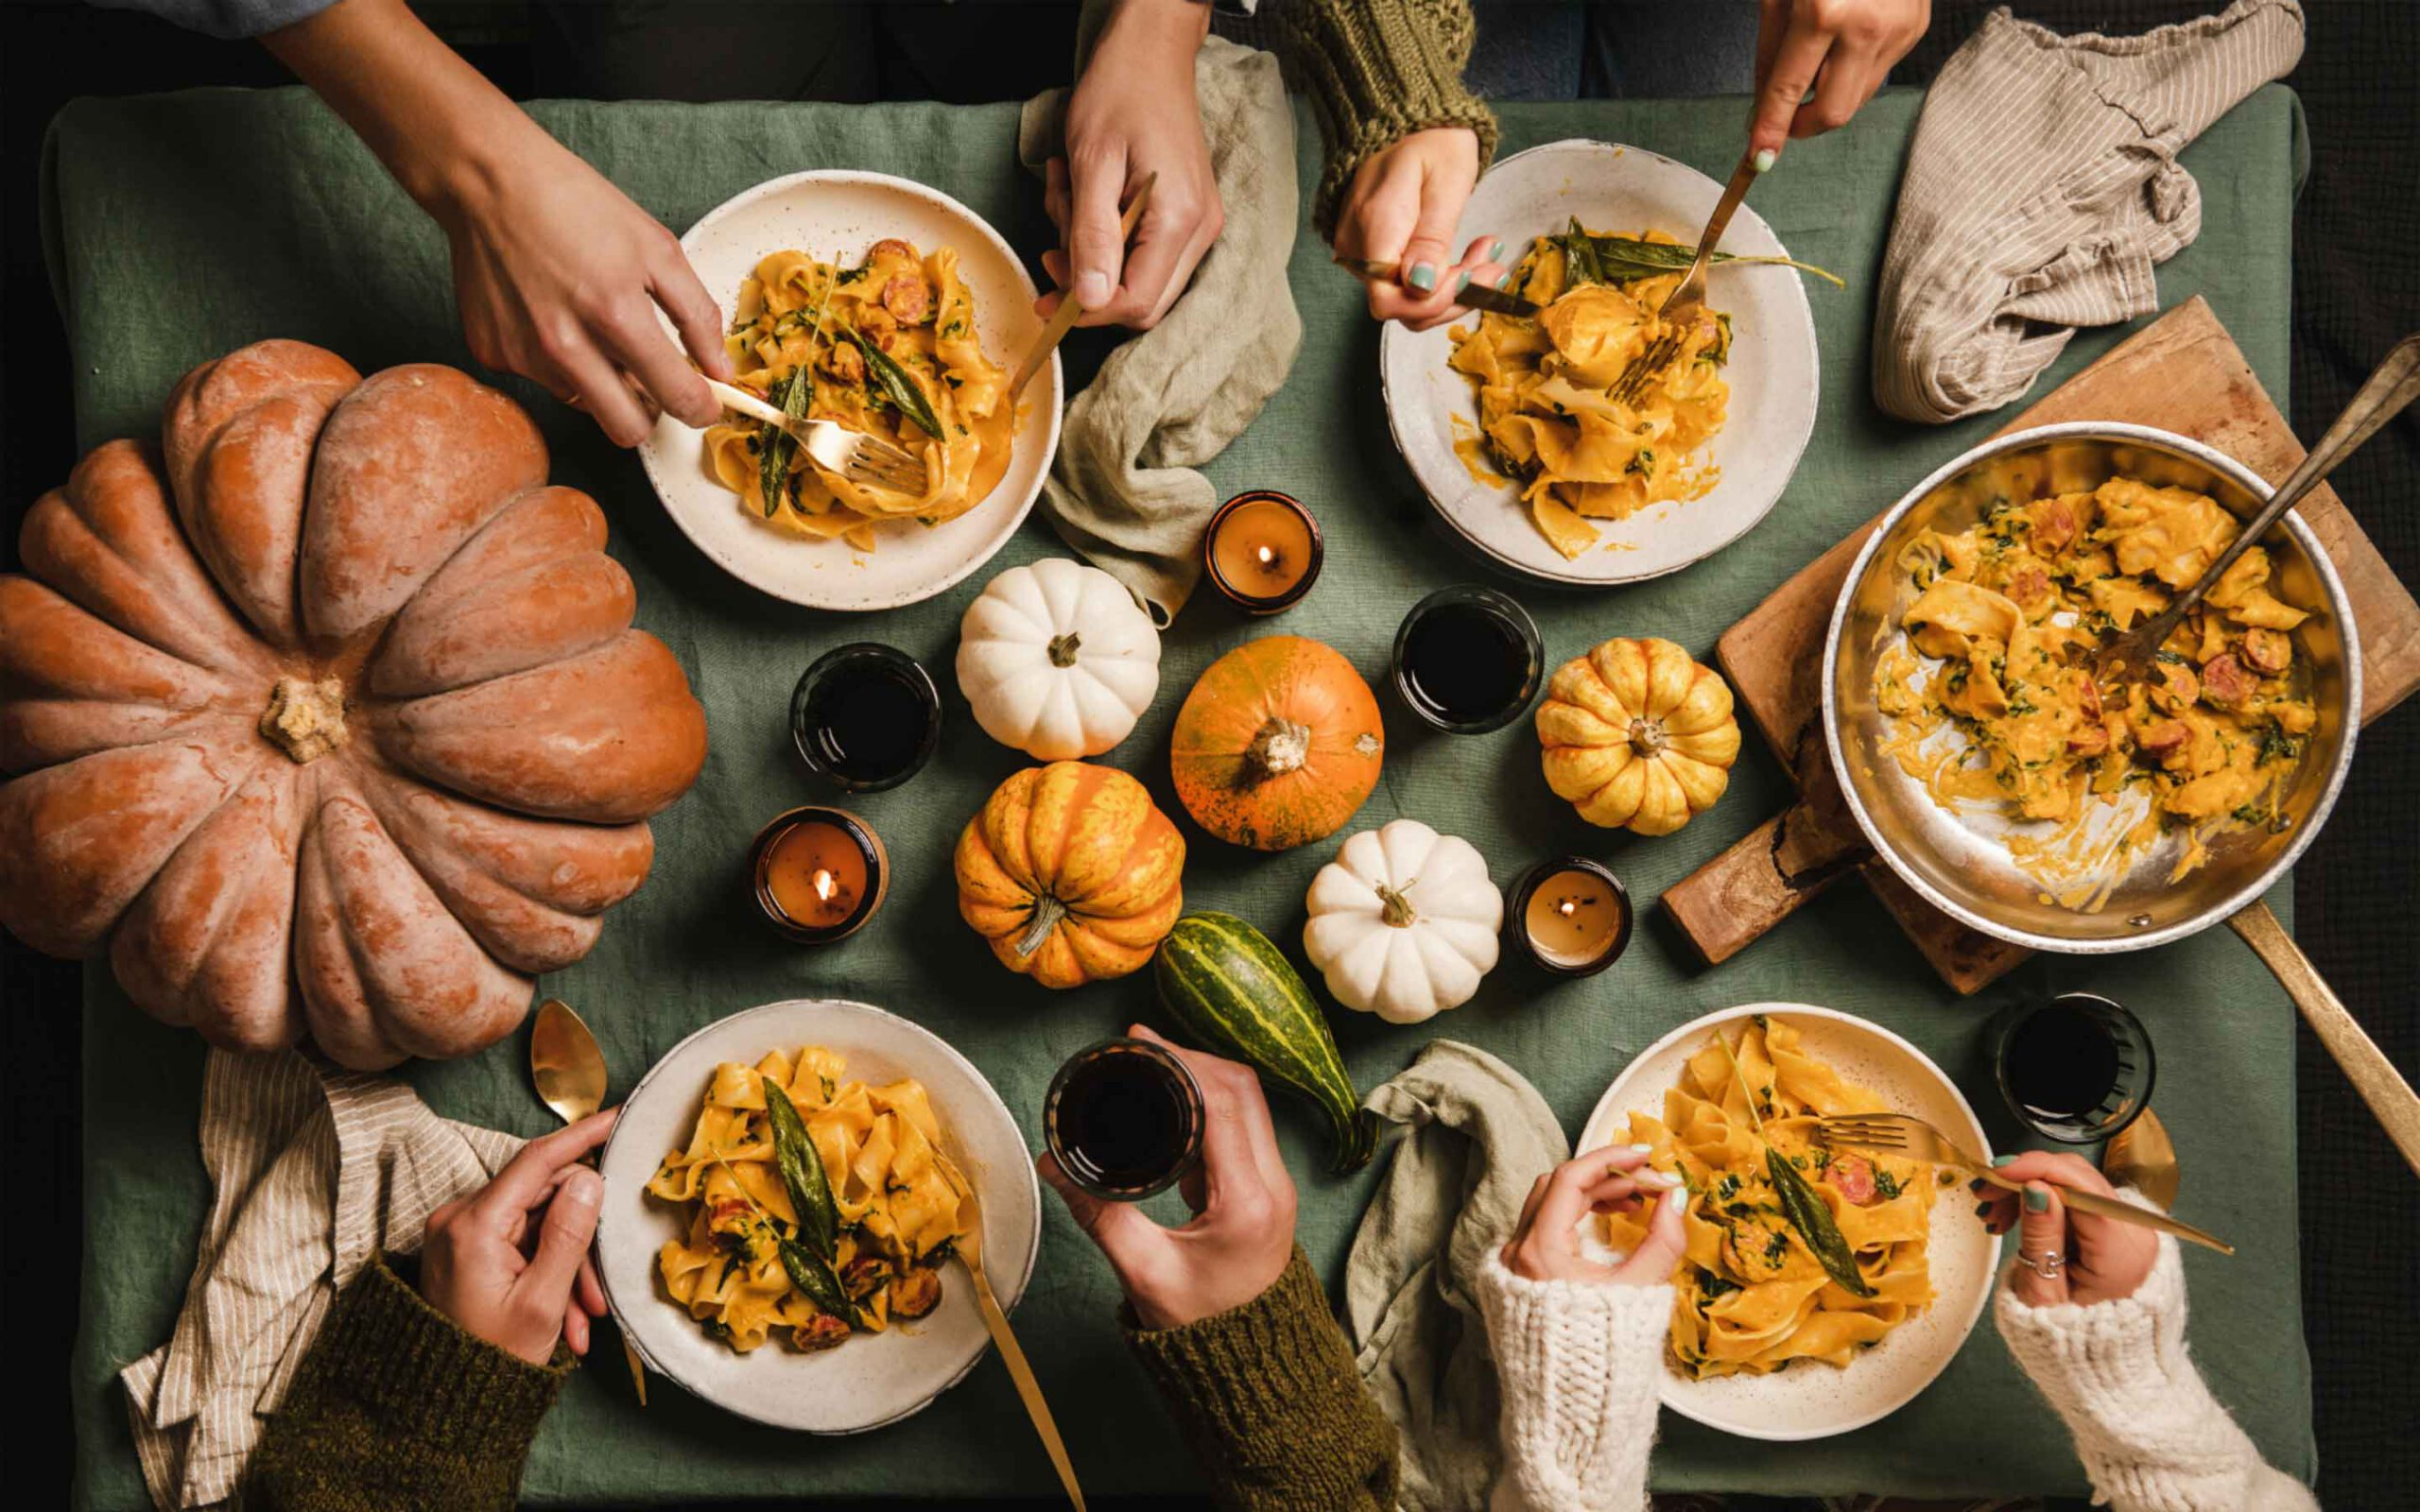 How to Build the Perfect Thanksgiving Dinner, According to Data